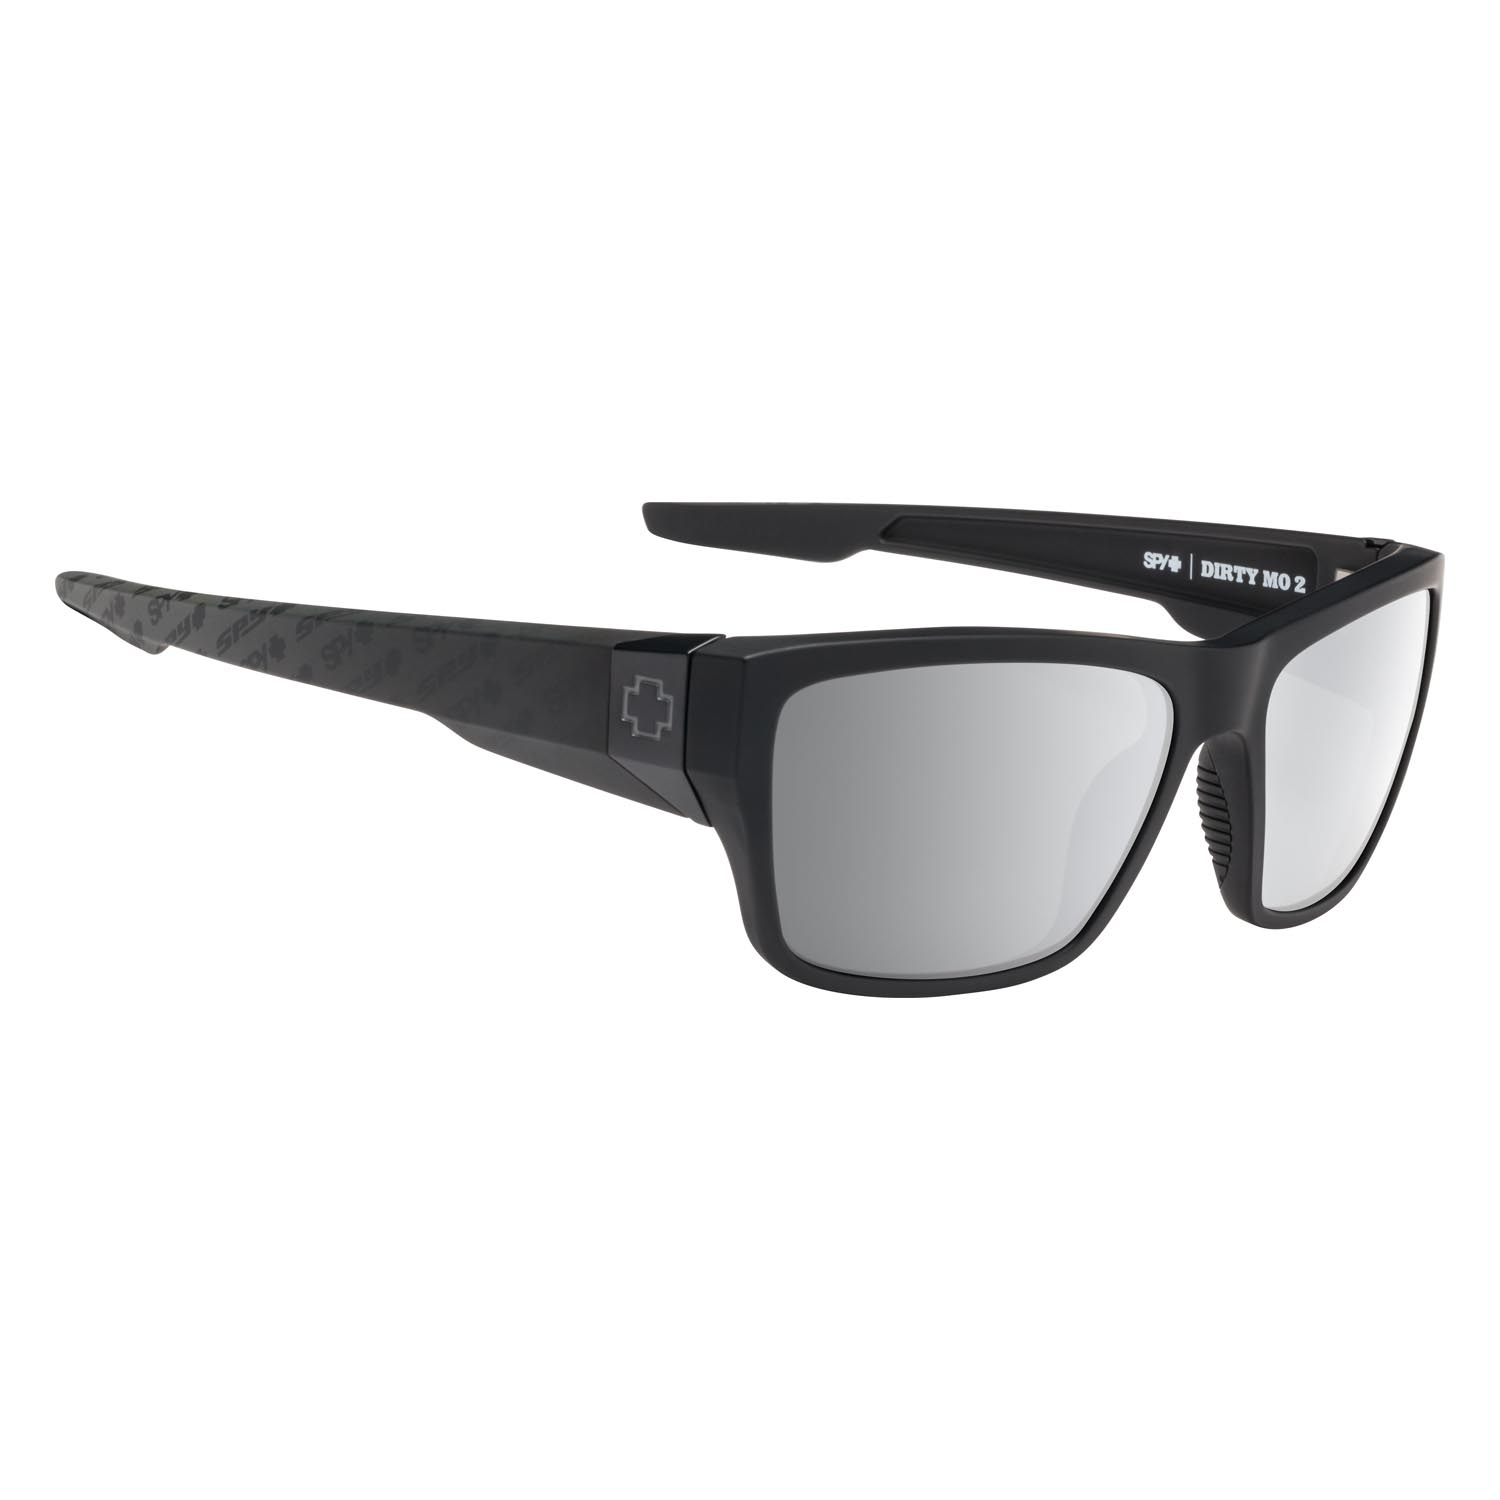 Spy Sunglasses Dirty Mo 2 in matte black with silver spectra